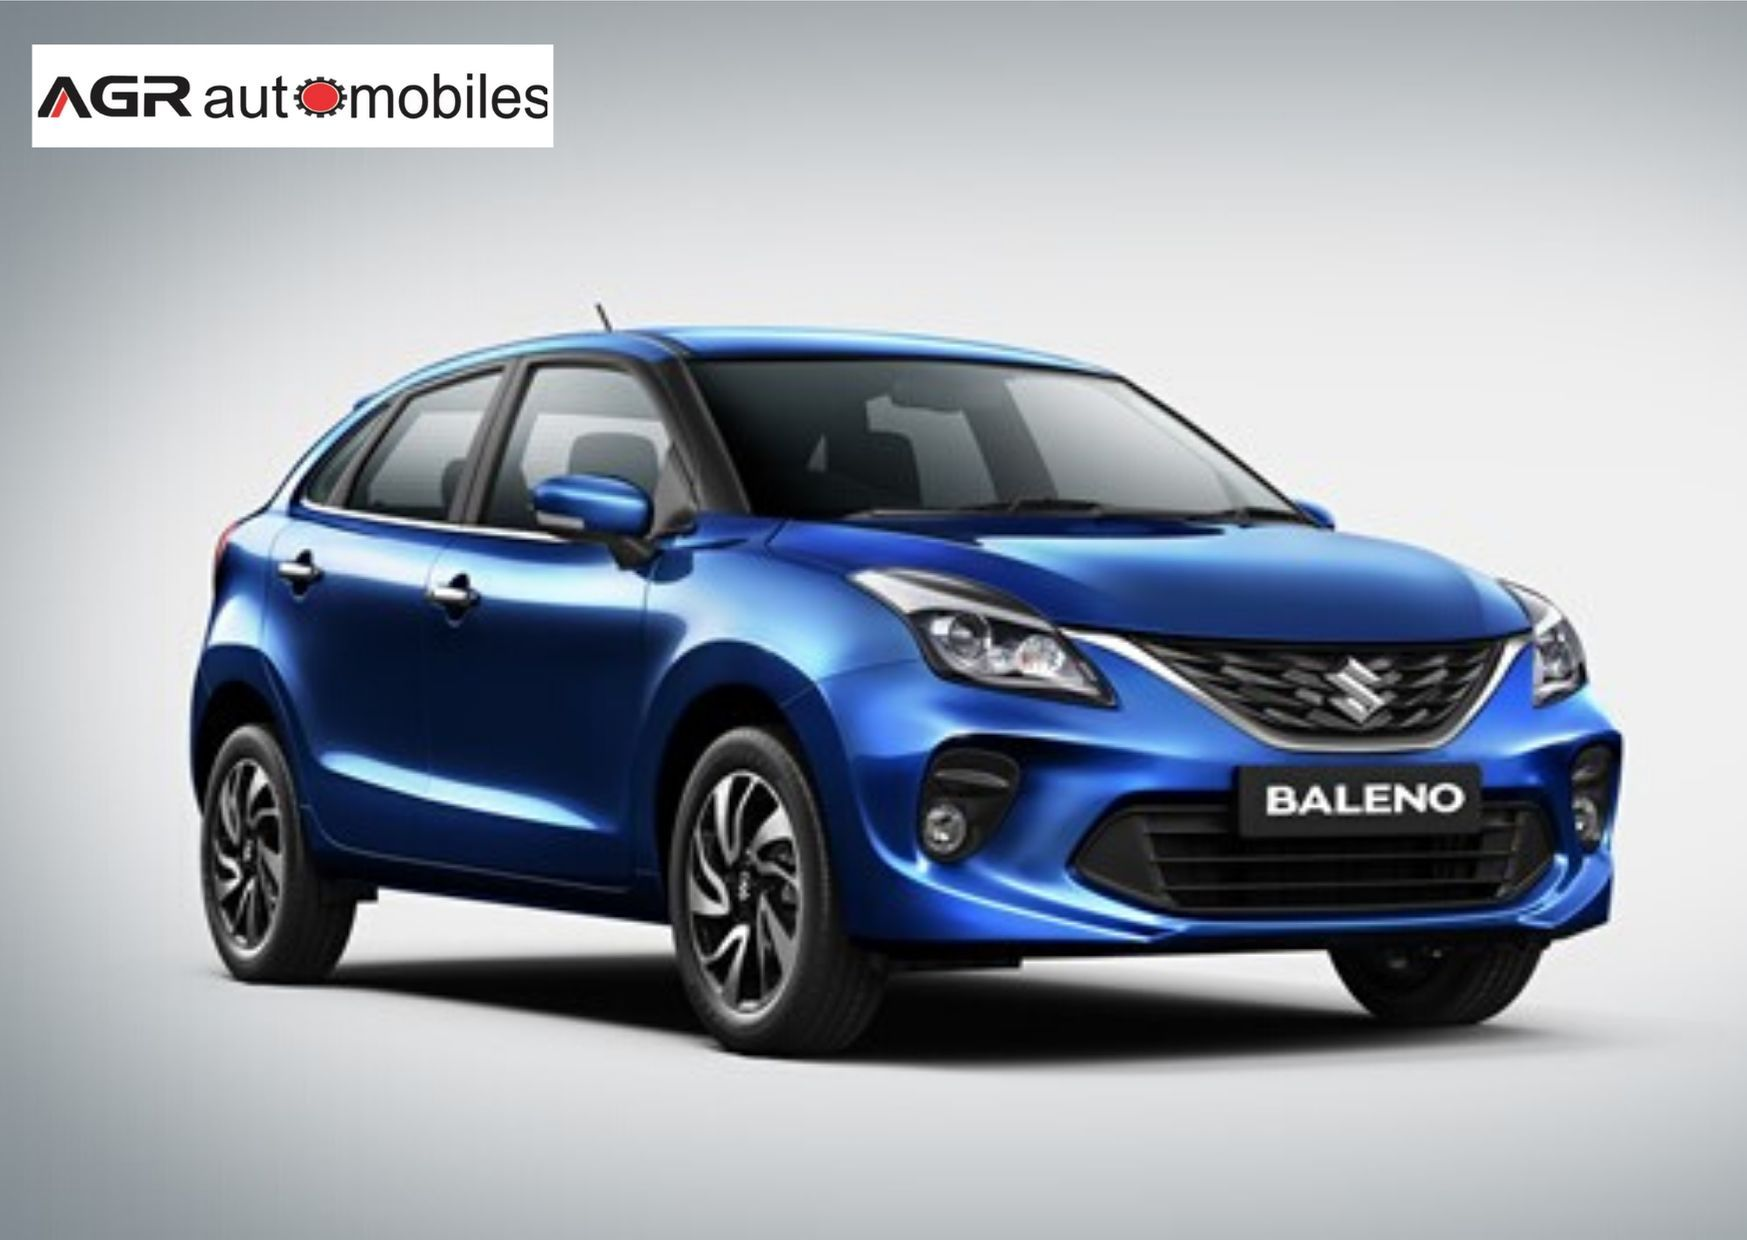 The Baleno Car Is Most Popular Luxury Hatchback Which I Known For Its Appealing Look And Best Features If You Want To Own That Amazing Suzuki Car Showroom Car